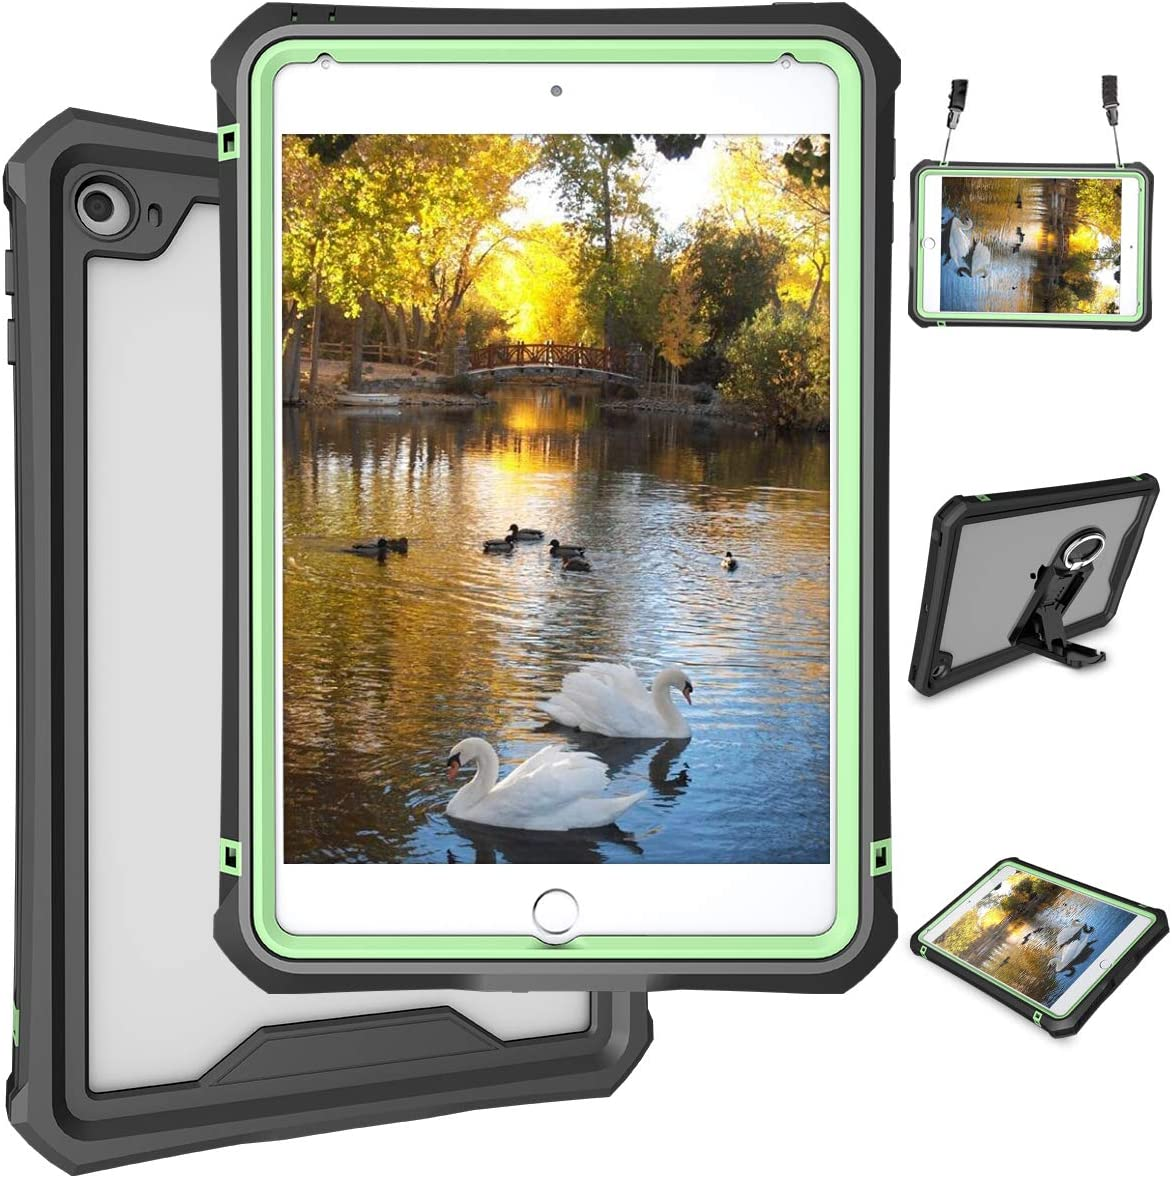 """iPad Mini 5 Case - Waterproof Case for iPad Mini 5 Full Body Bumper Case with Built in Screen Protector Drop Proof Anti Scratch Shcokproof Case Cover for iPad Mini 5th Generation 7.9"""" 2019"""